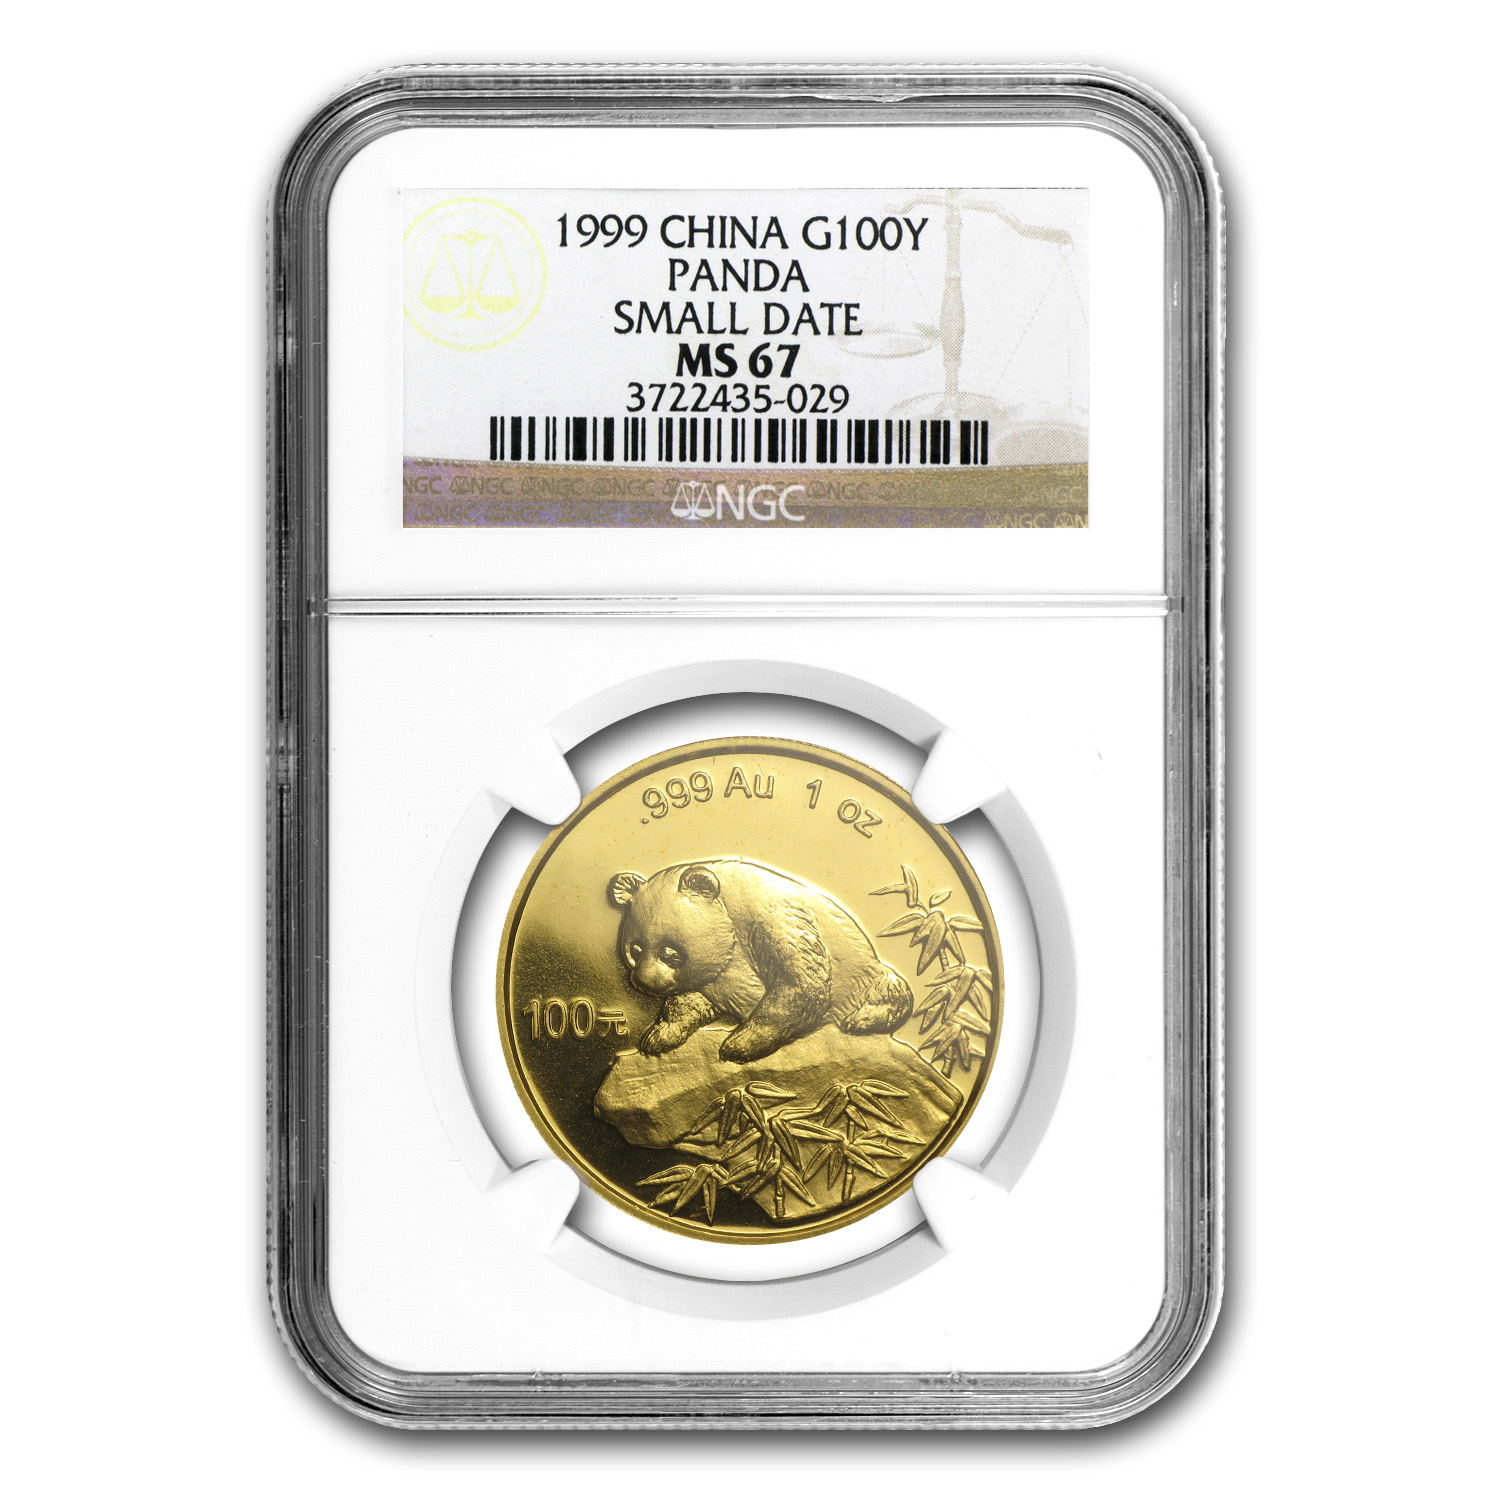 1999 China 1 oz Gold Panda Small Date MS-67 NGC